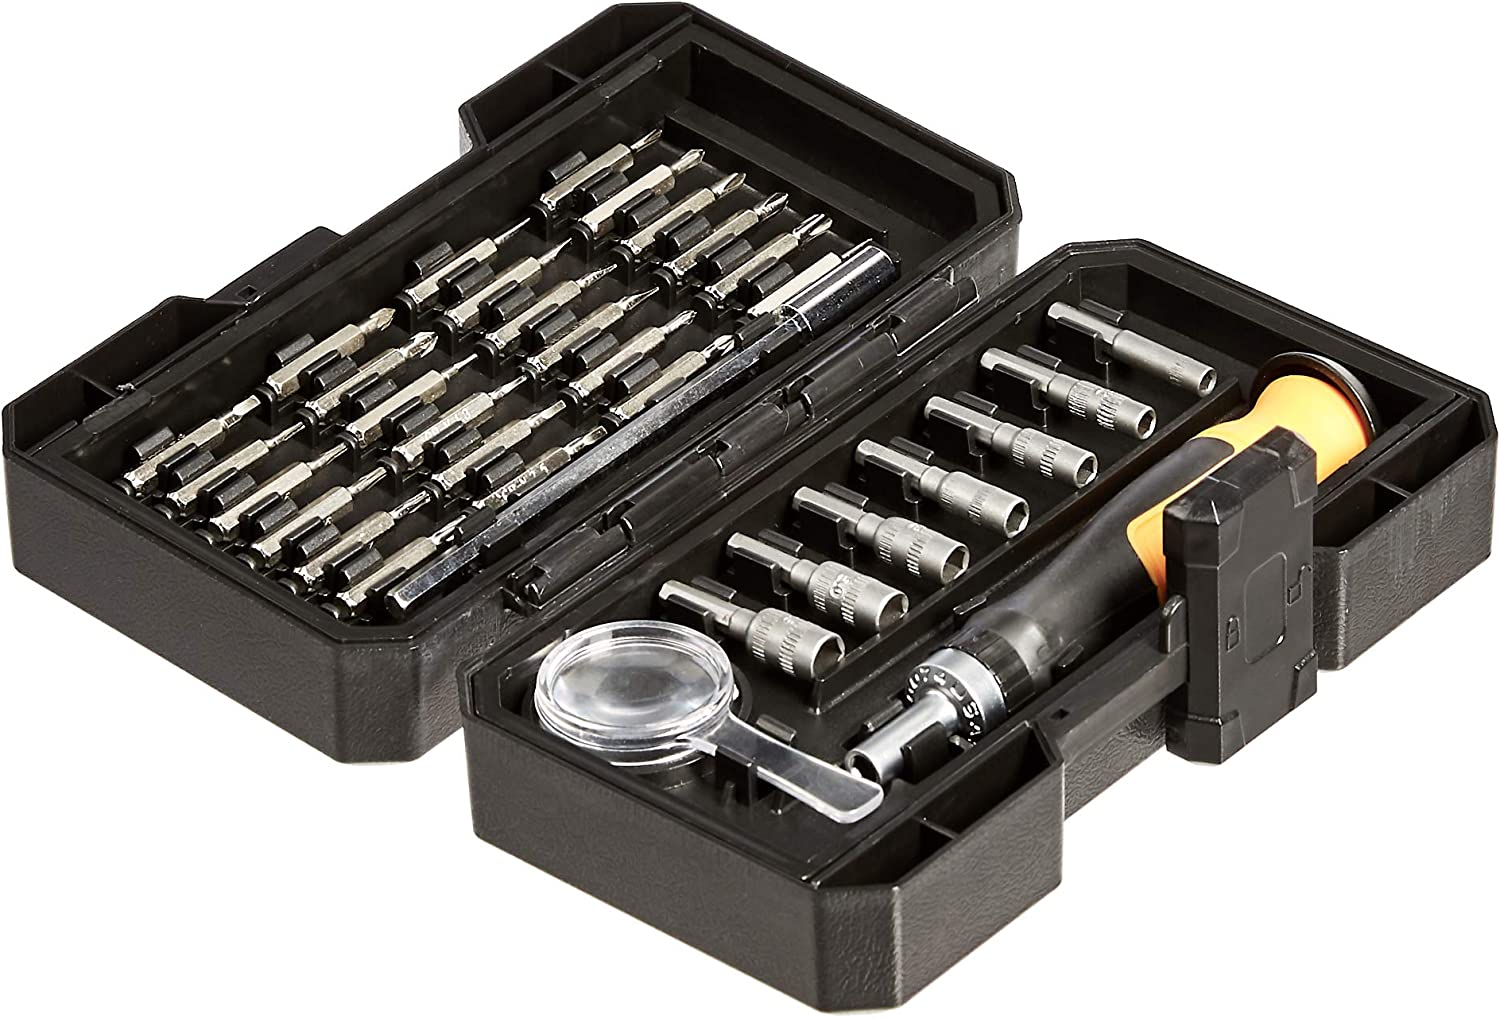 Basics Precision Ratcheting Driver and Bits Set 34-Piece